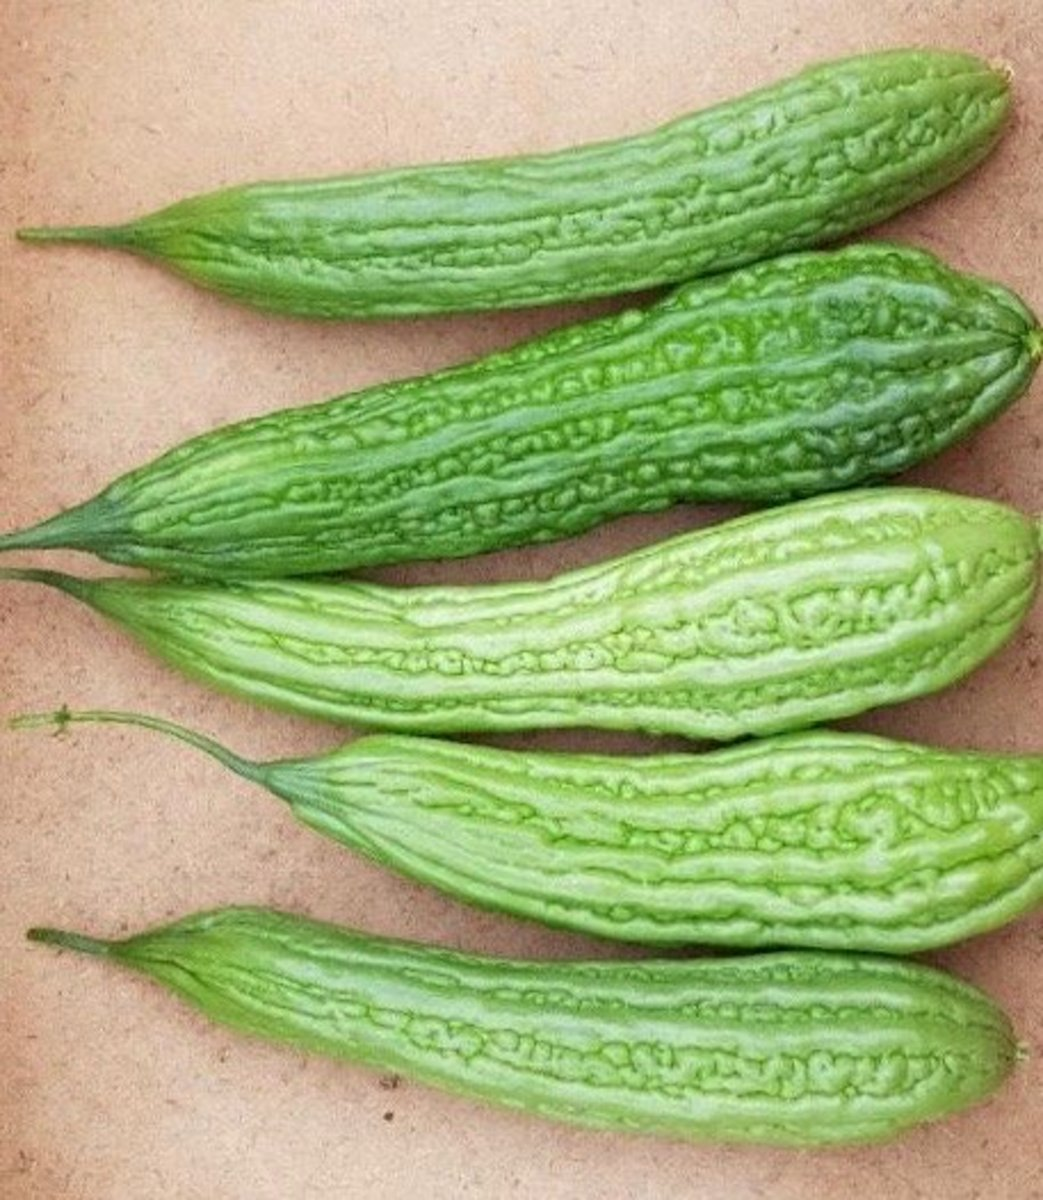 Ampalaya, or bitter gourd, can be cooked into delicious dishes or made into a tea. It has numerous vitamins and health benefits.